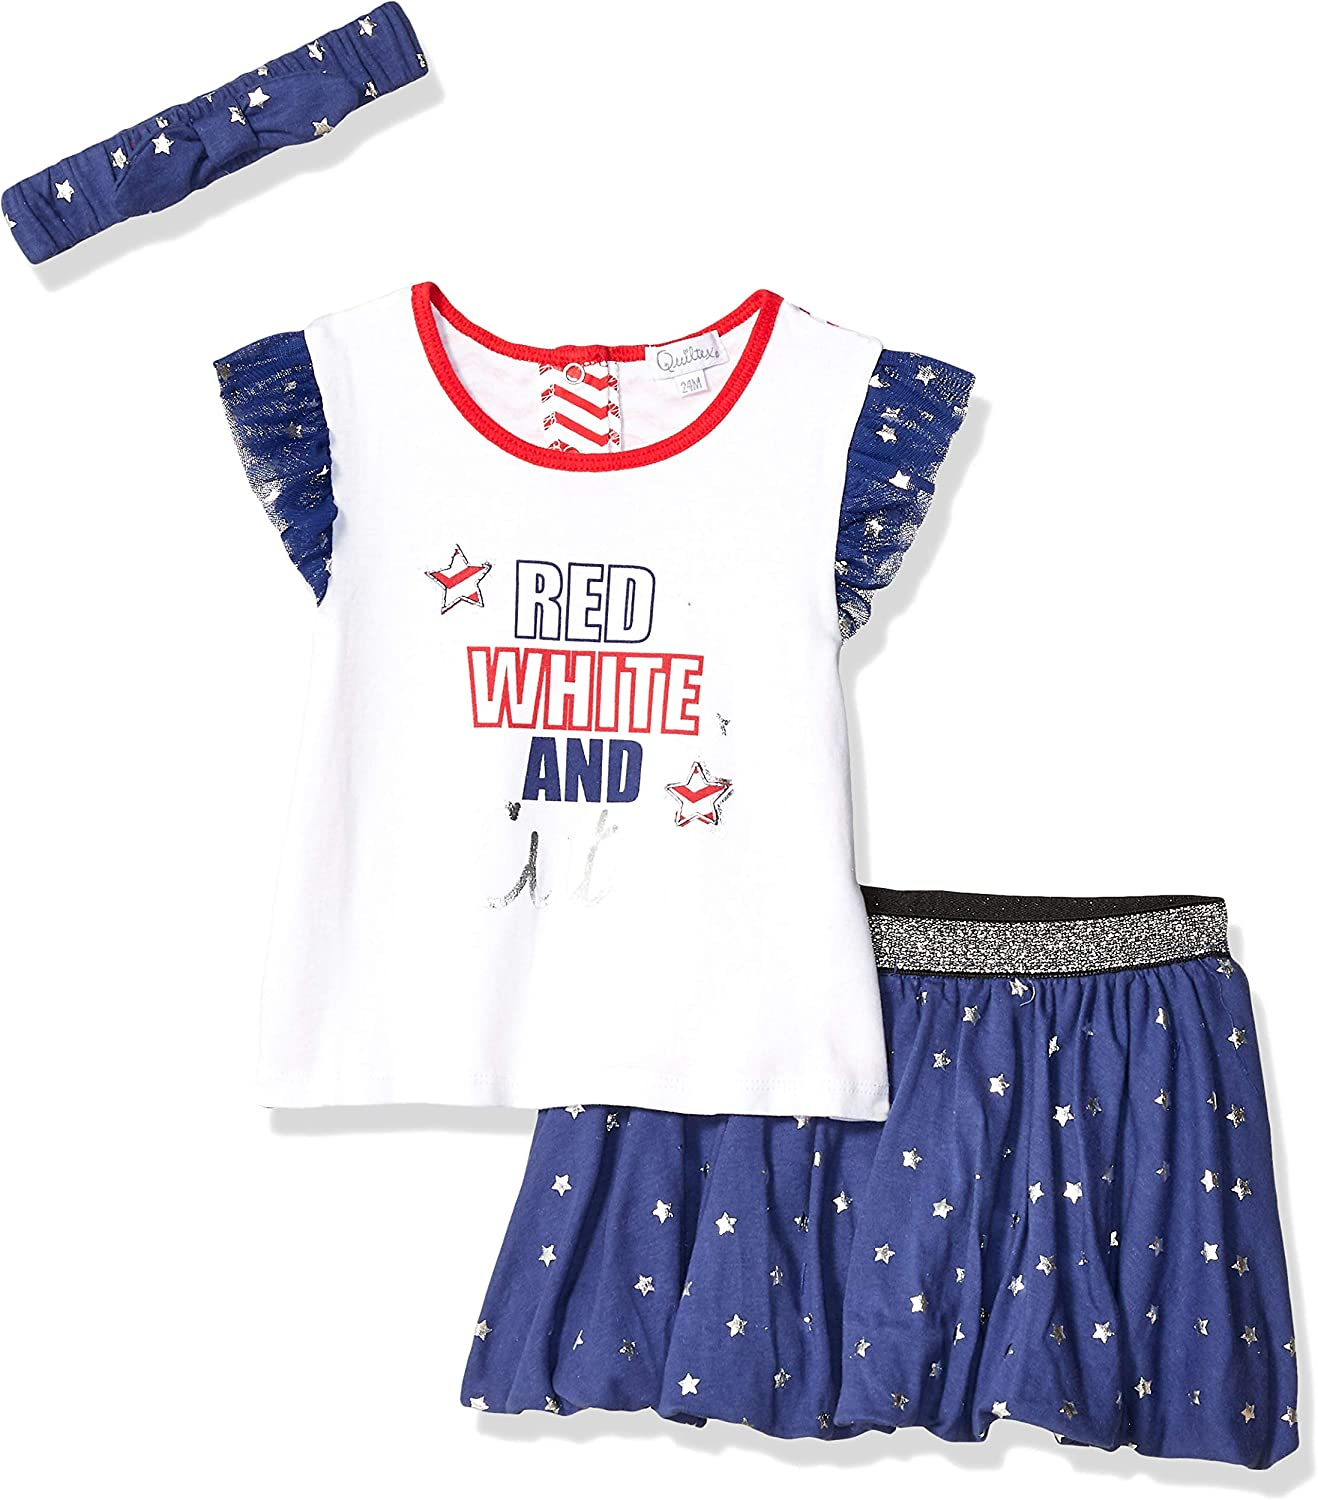 Quiltex Girls' Toddler QIG93868, RED White and Cute, 24M